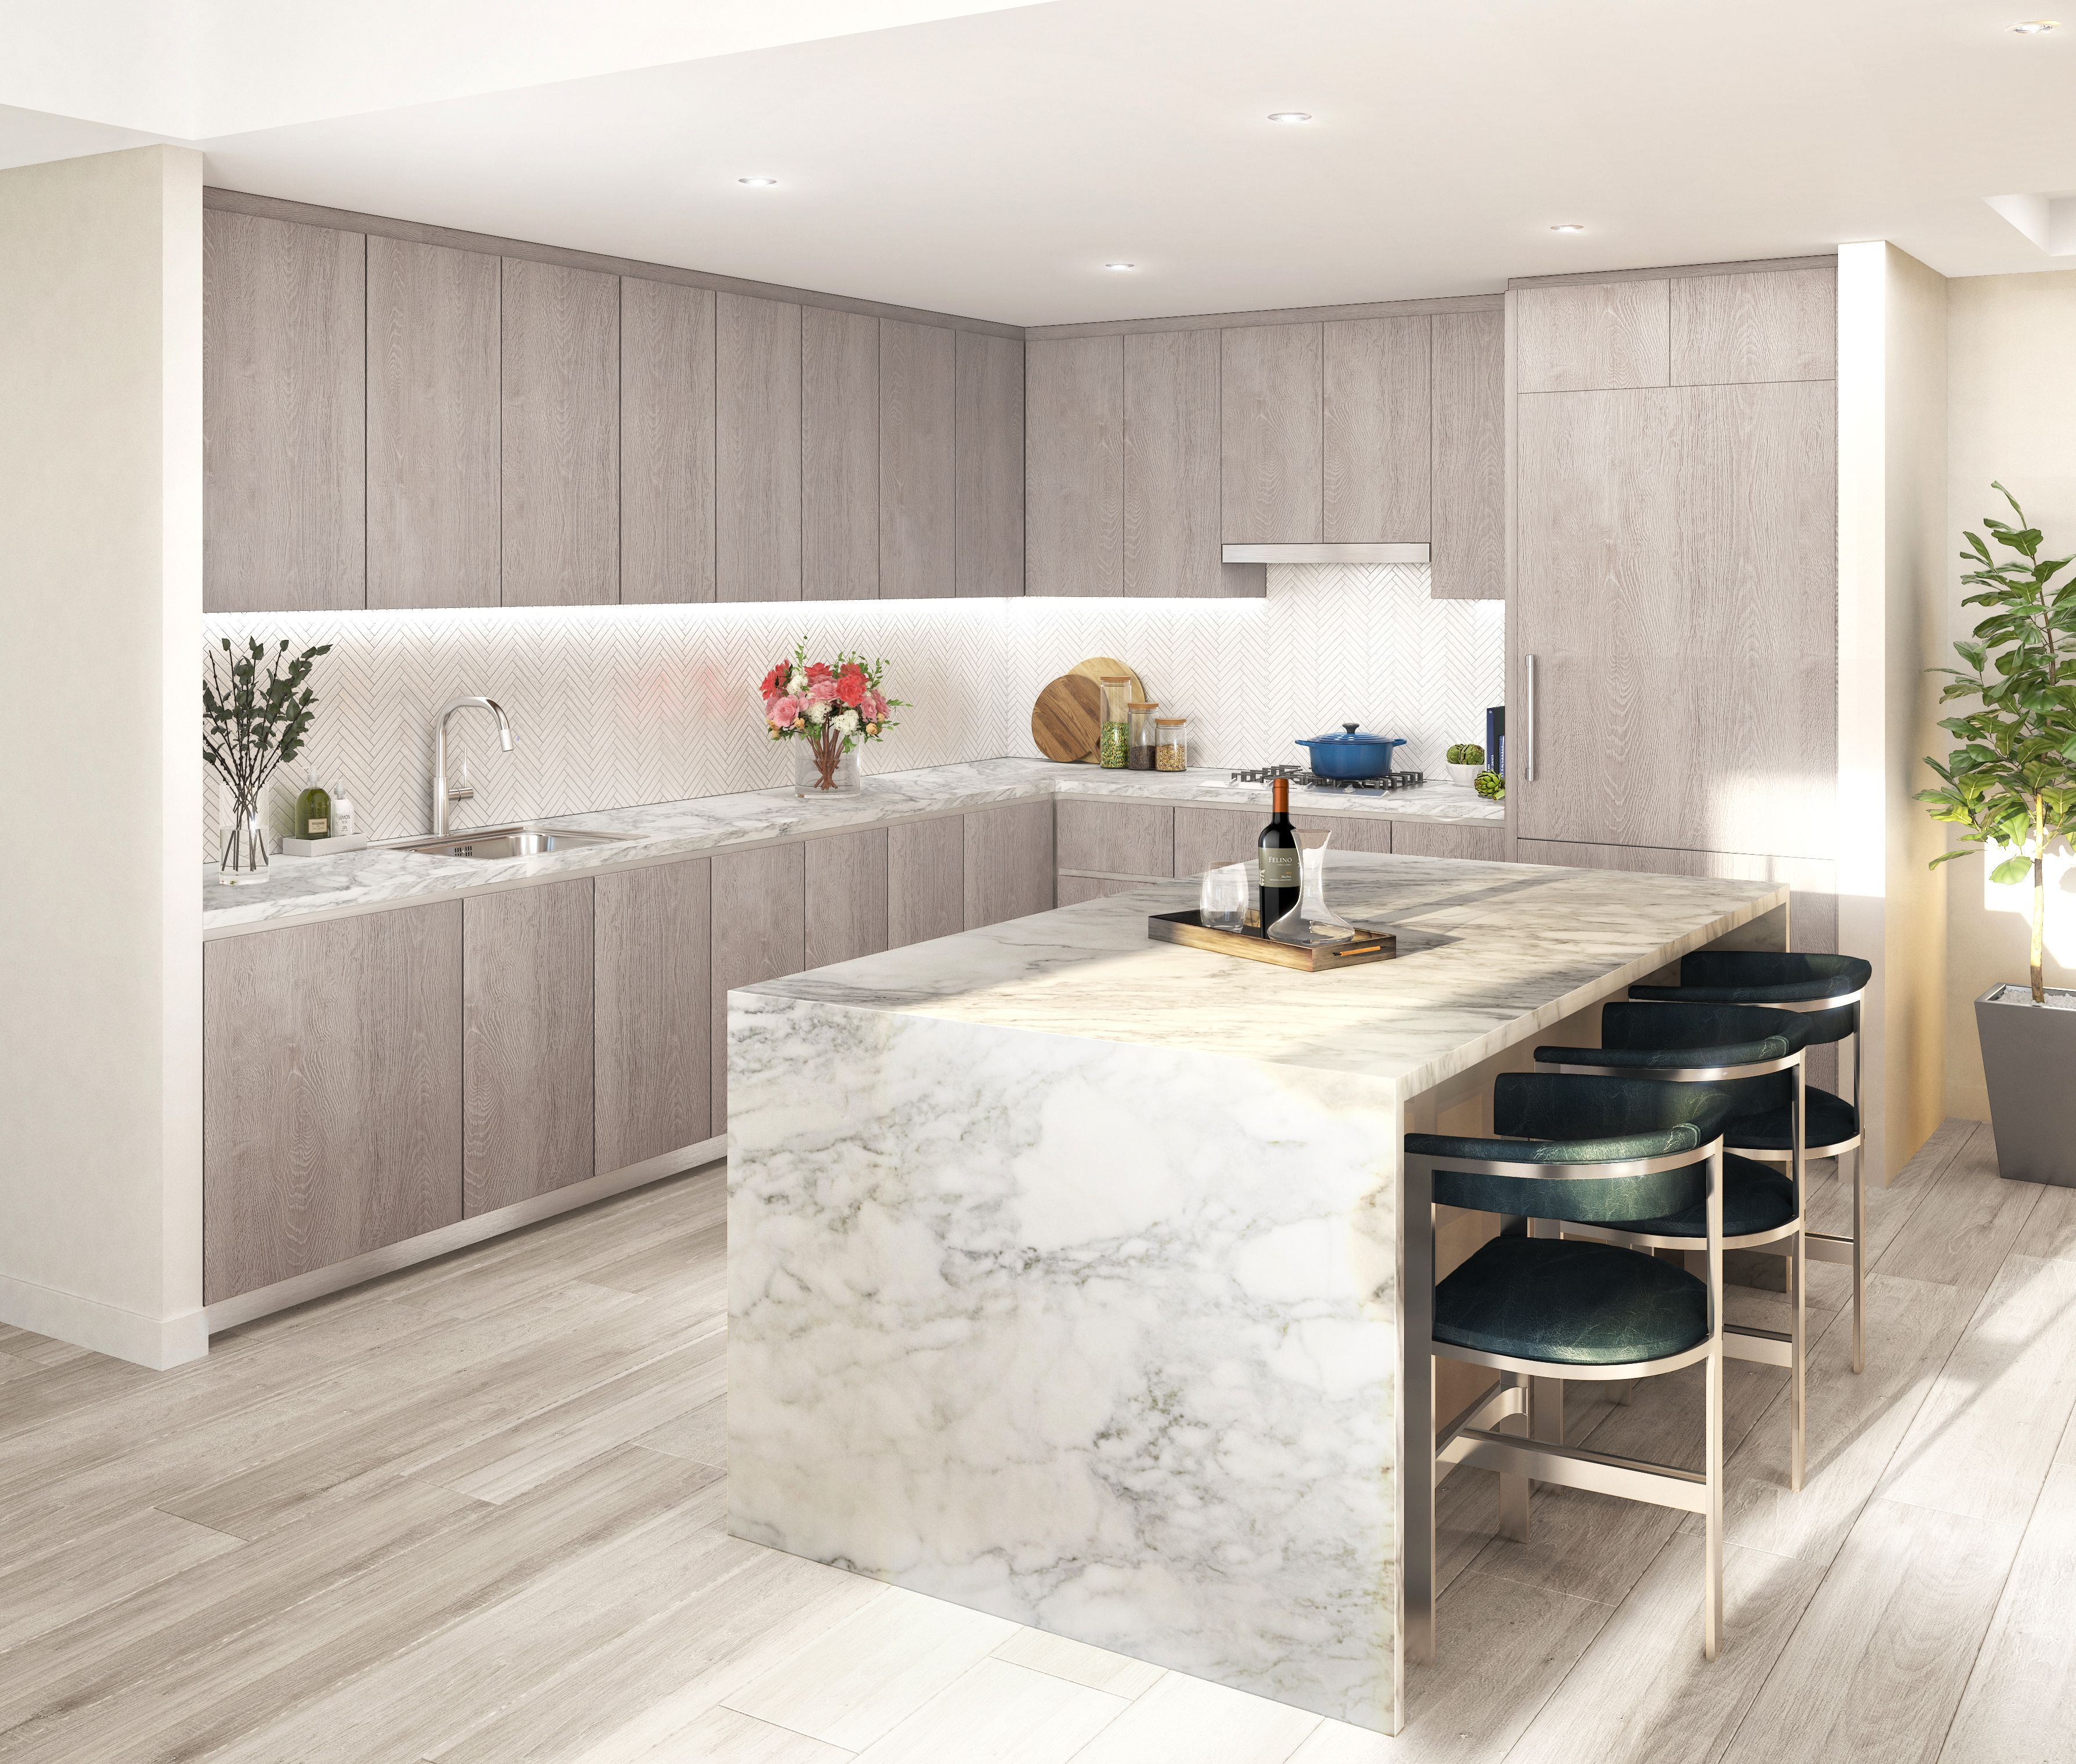 Kitchen featured in the Residence D1 By MUSE in Washington, VA